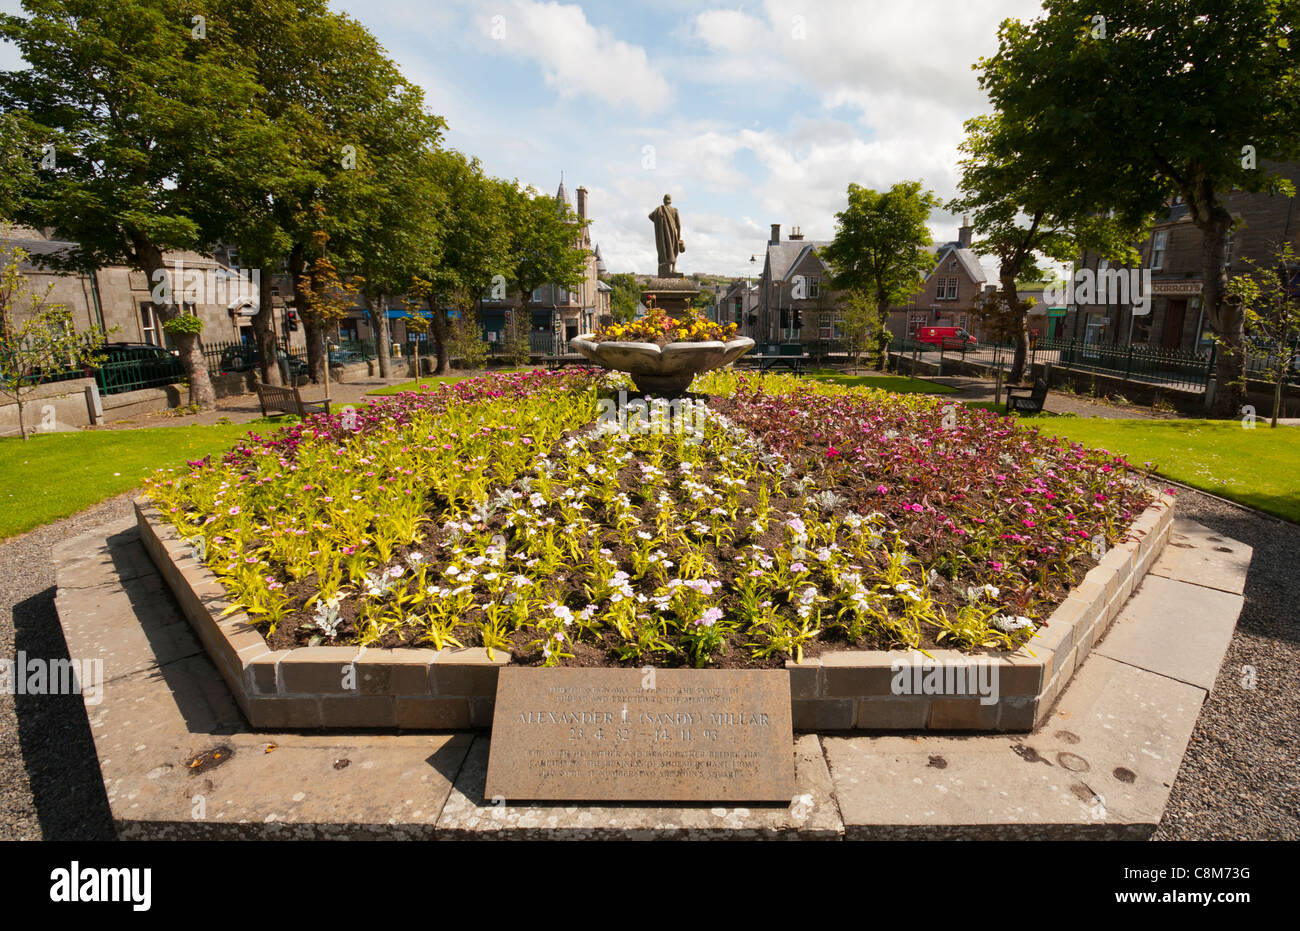 Floral display in Sir John's Square, Thurso, Caithness, Scotland, UK - Stock Image